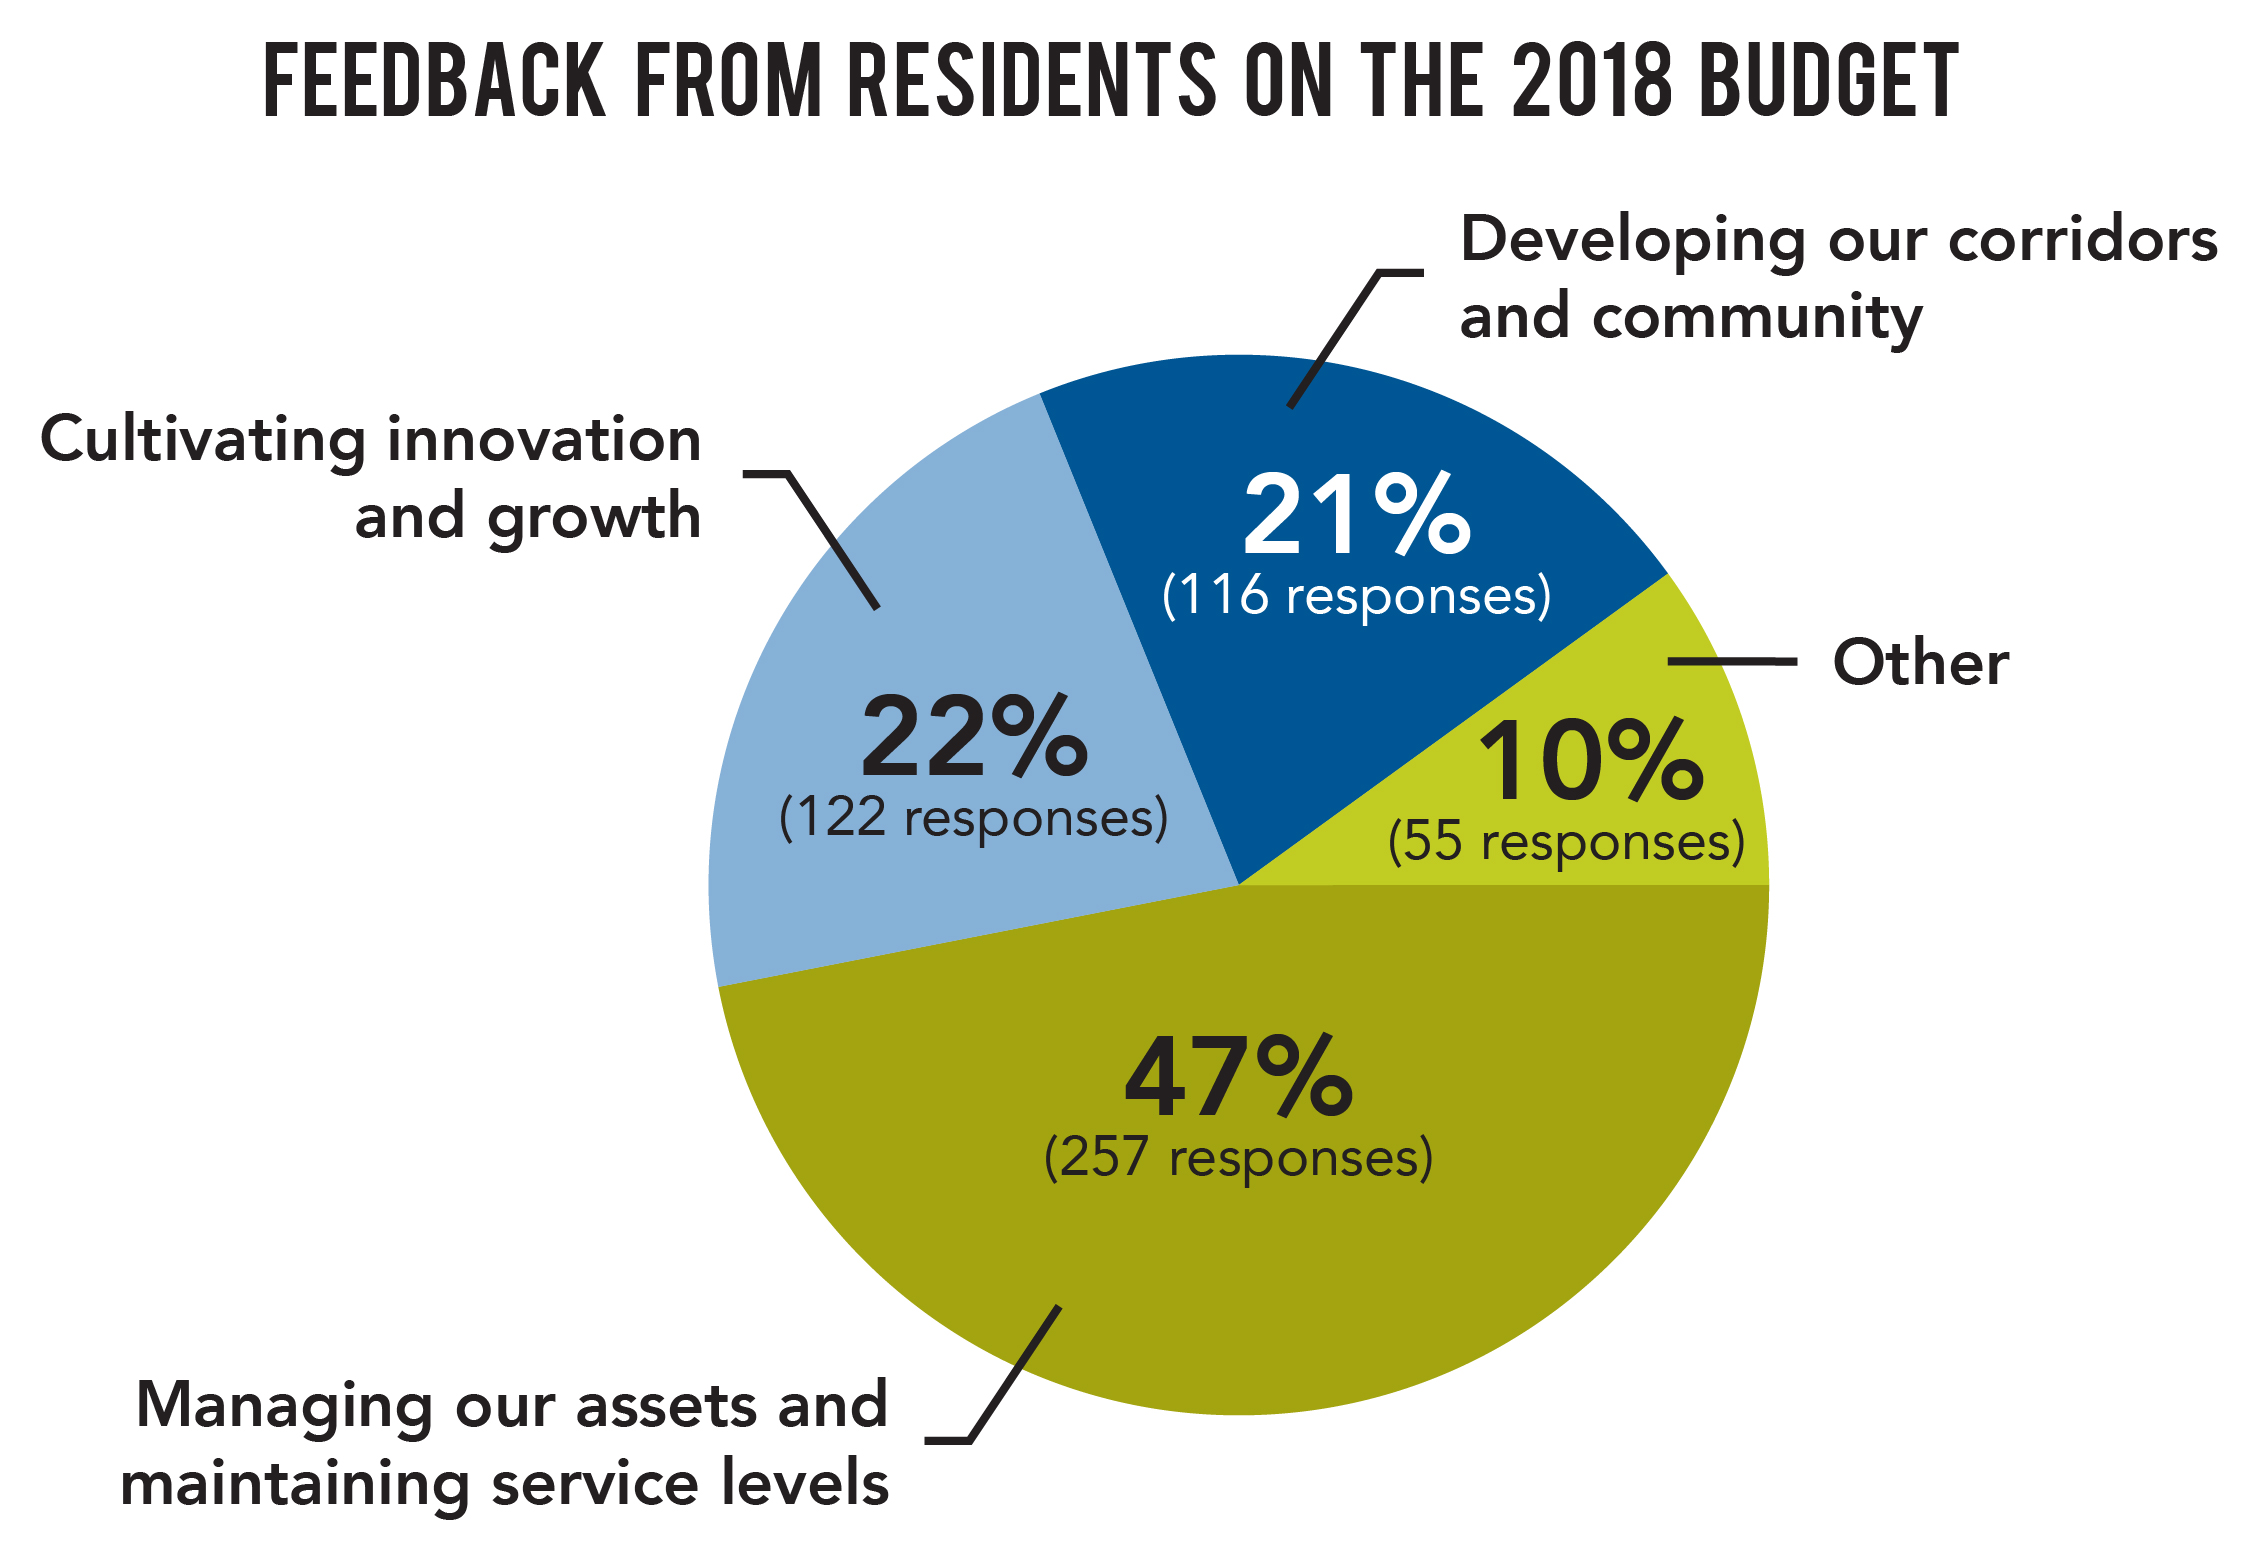 Feedback on the 2018 budget.jpg